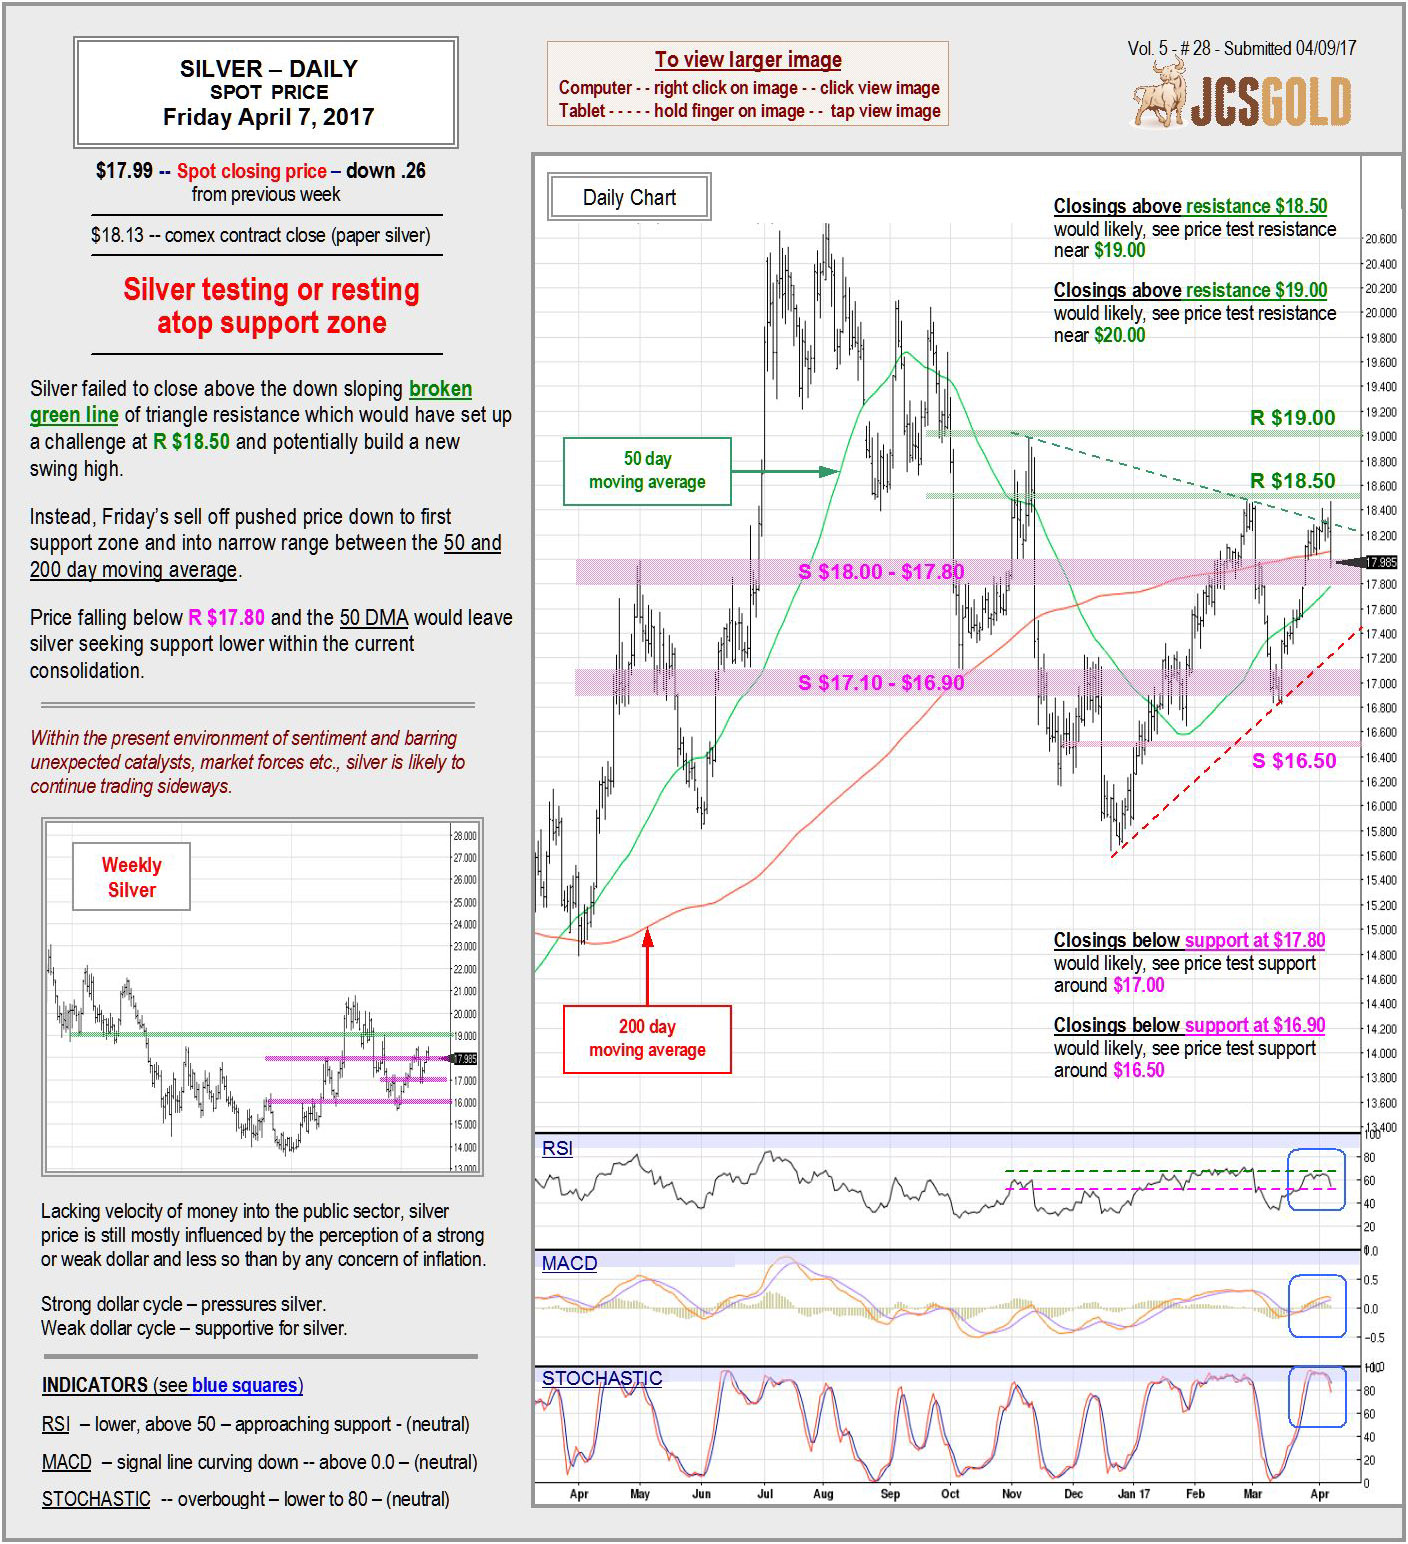 April 7, 2017 chart & commentary